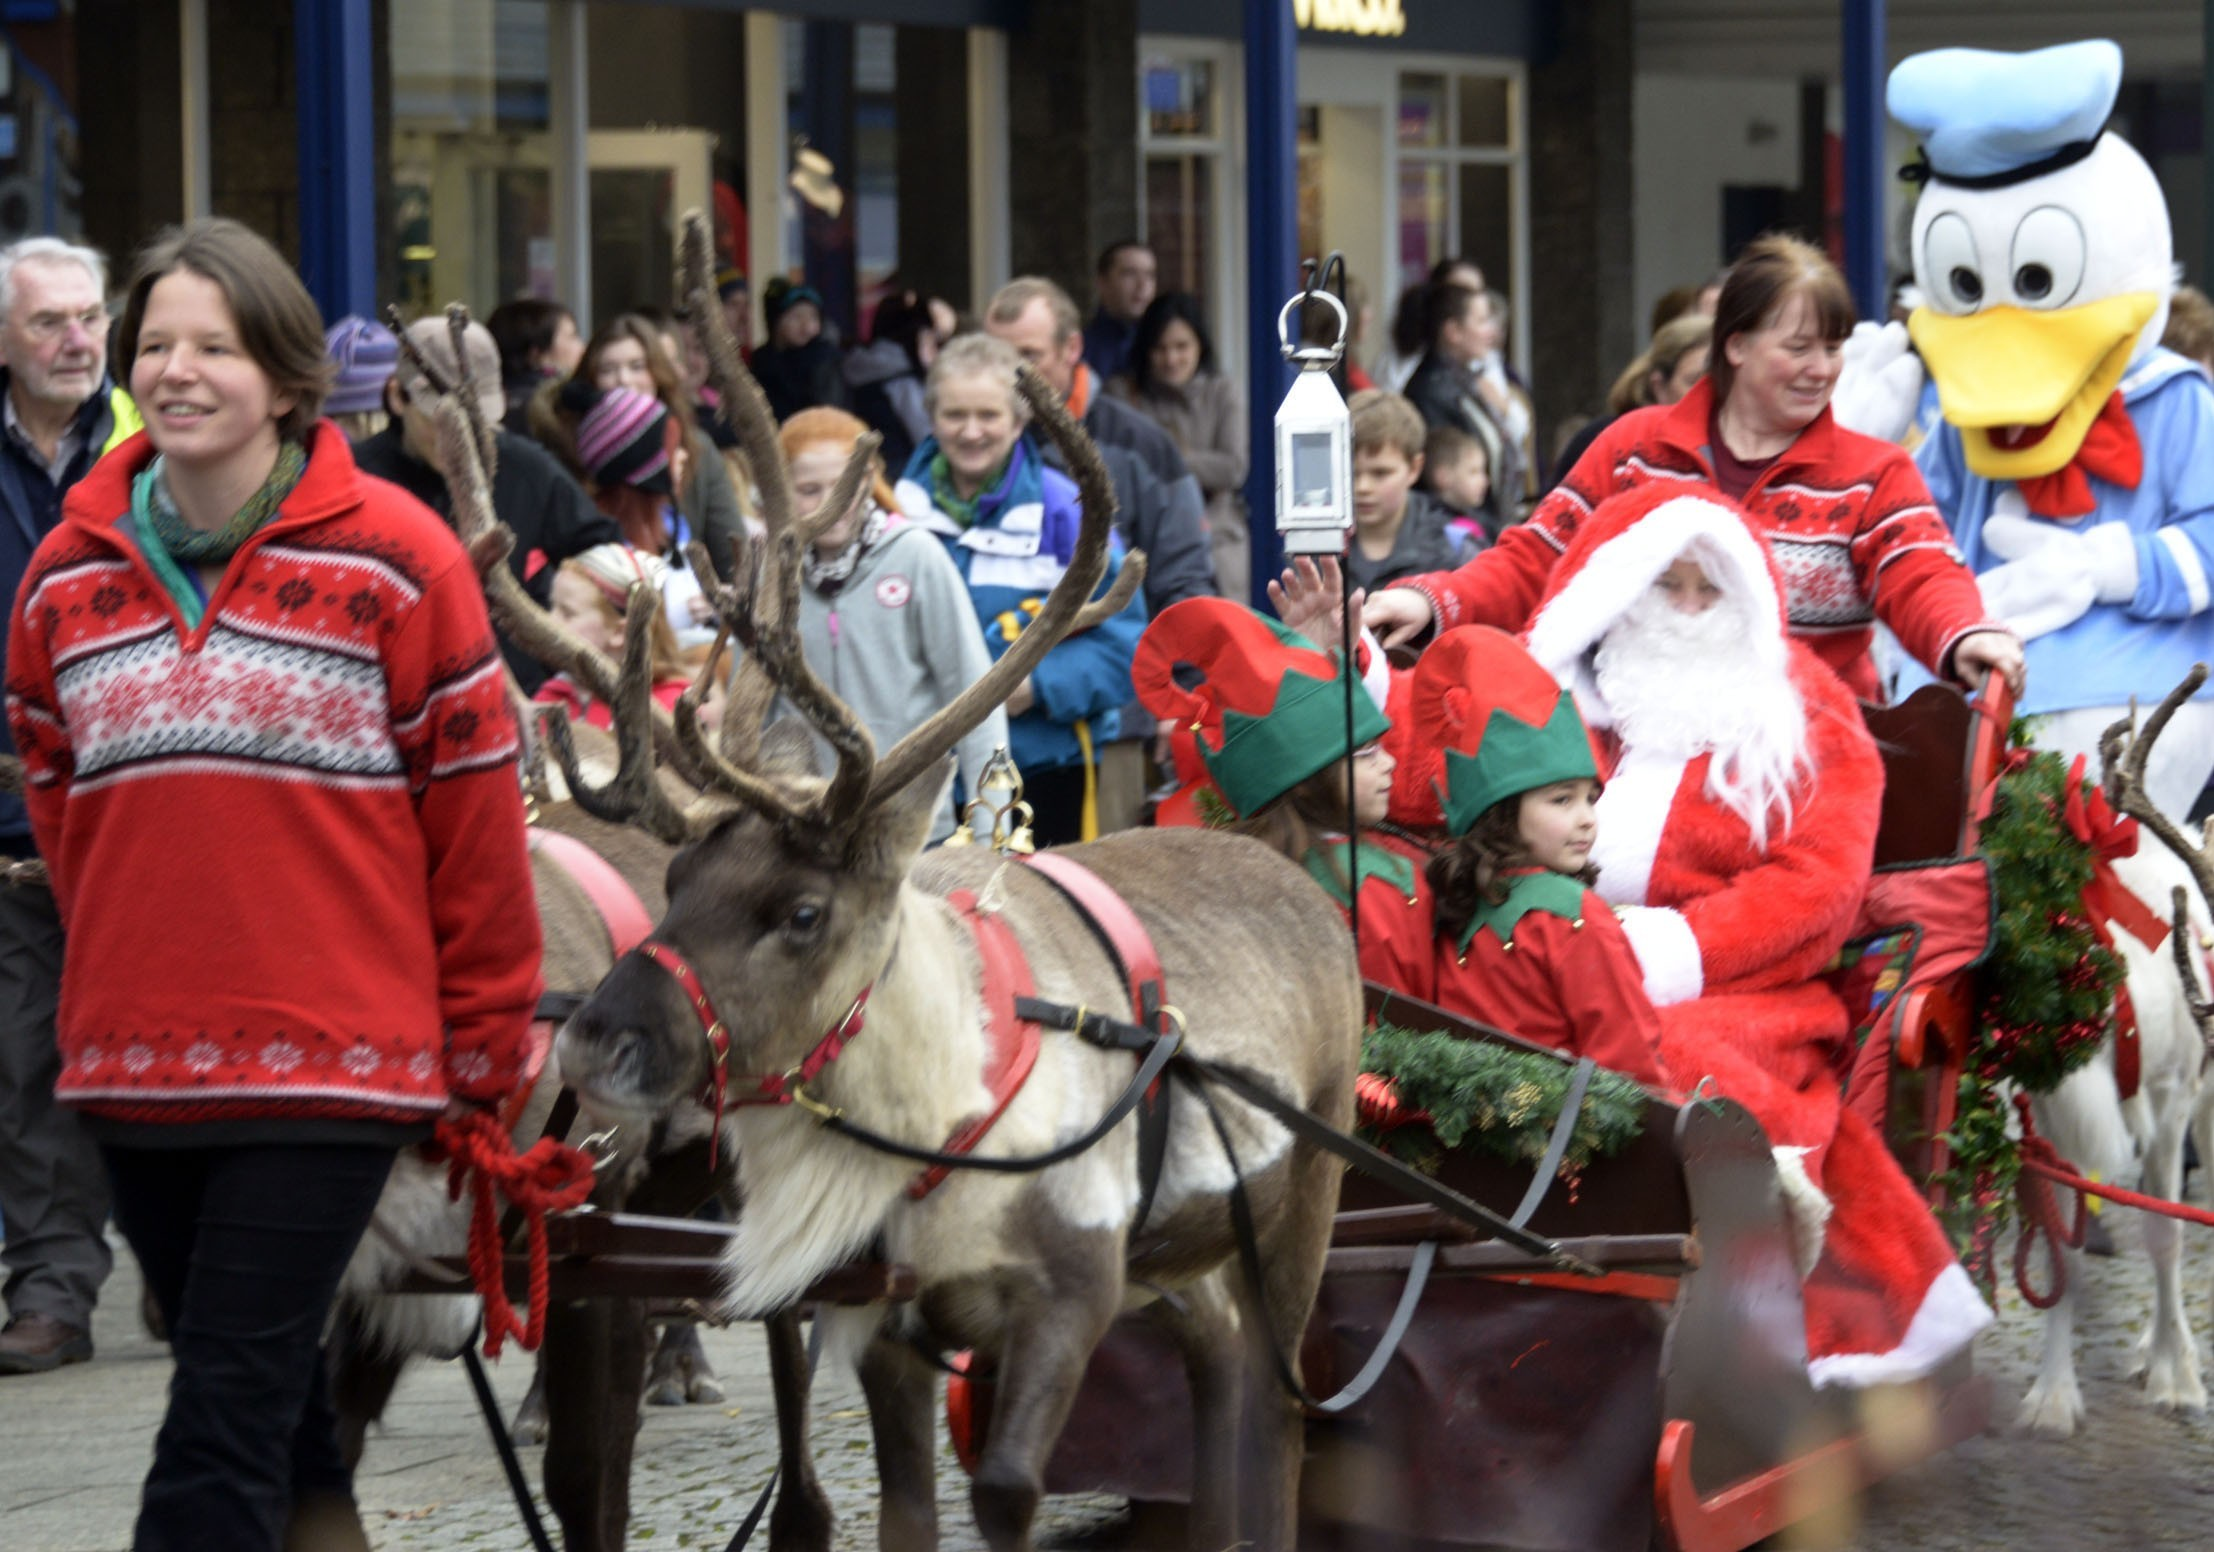 Santa and his reindeer arriving in Fort William for last year's Christmas Fair.